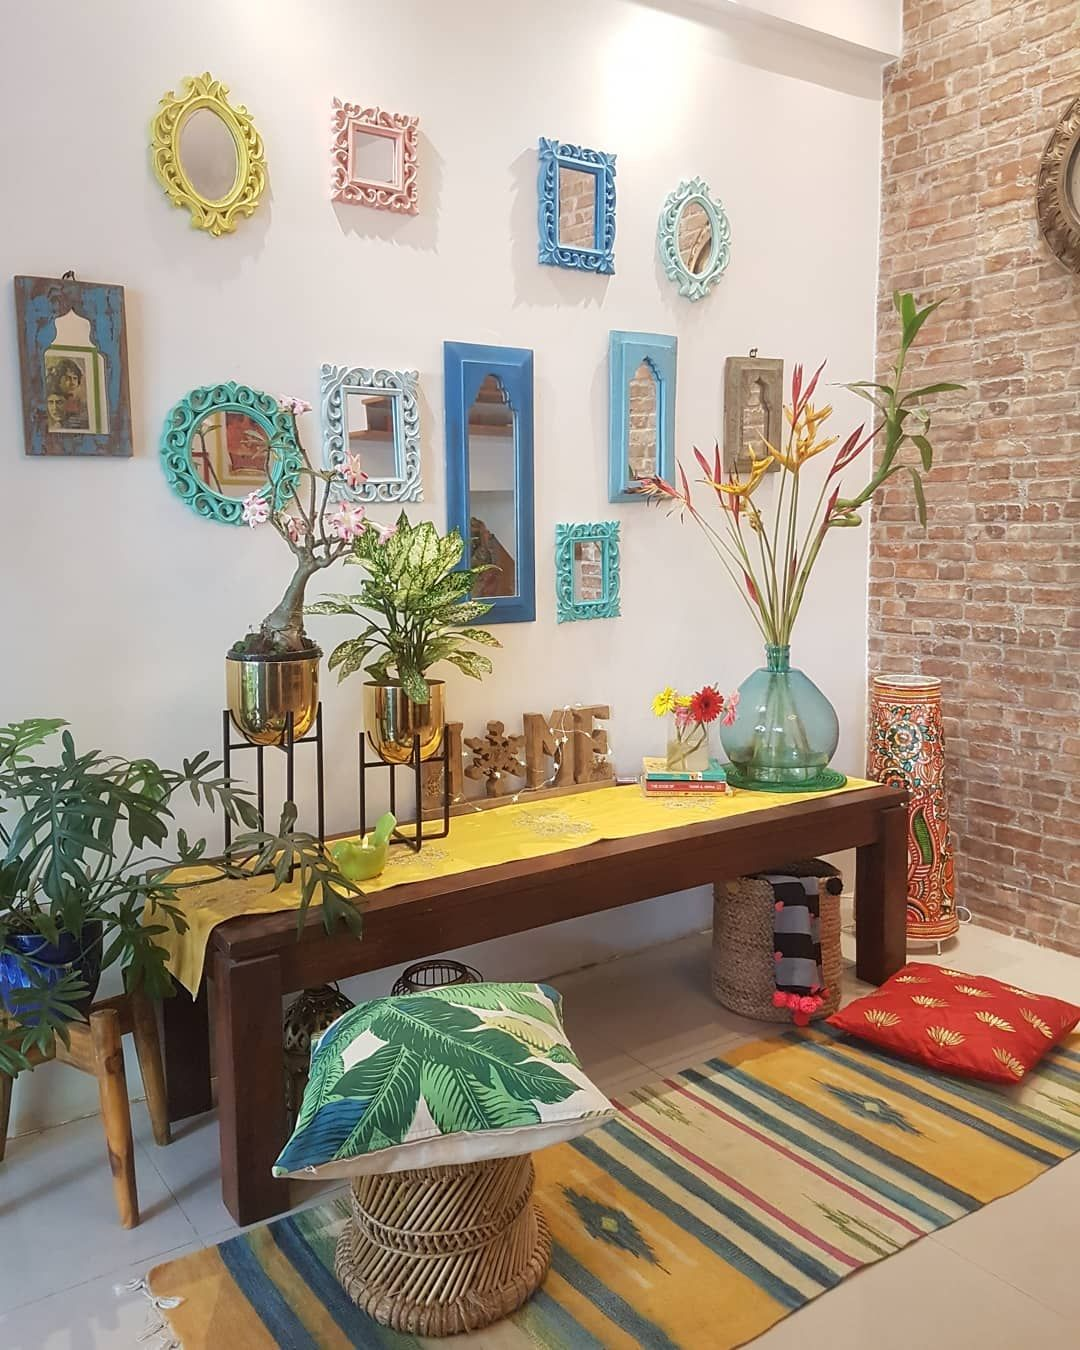 Home Design Ideas India: Pin By Kashfia Jannat On Home Decor In 2020